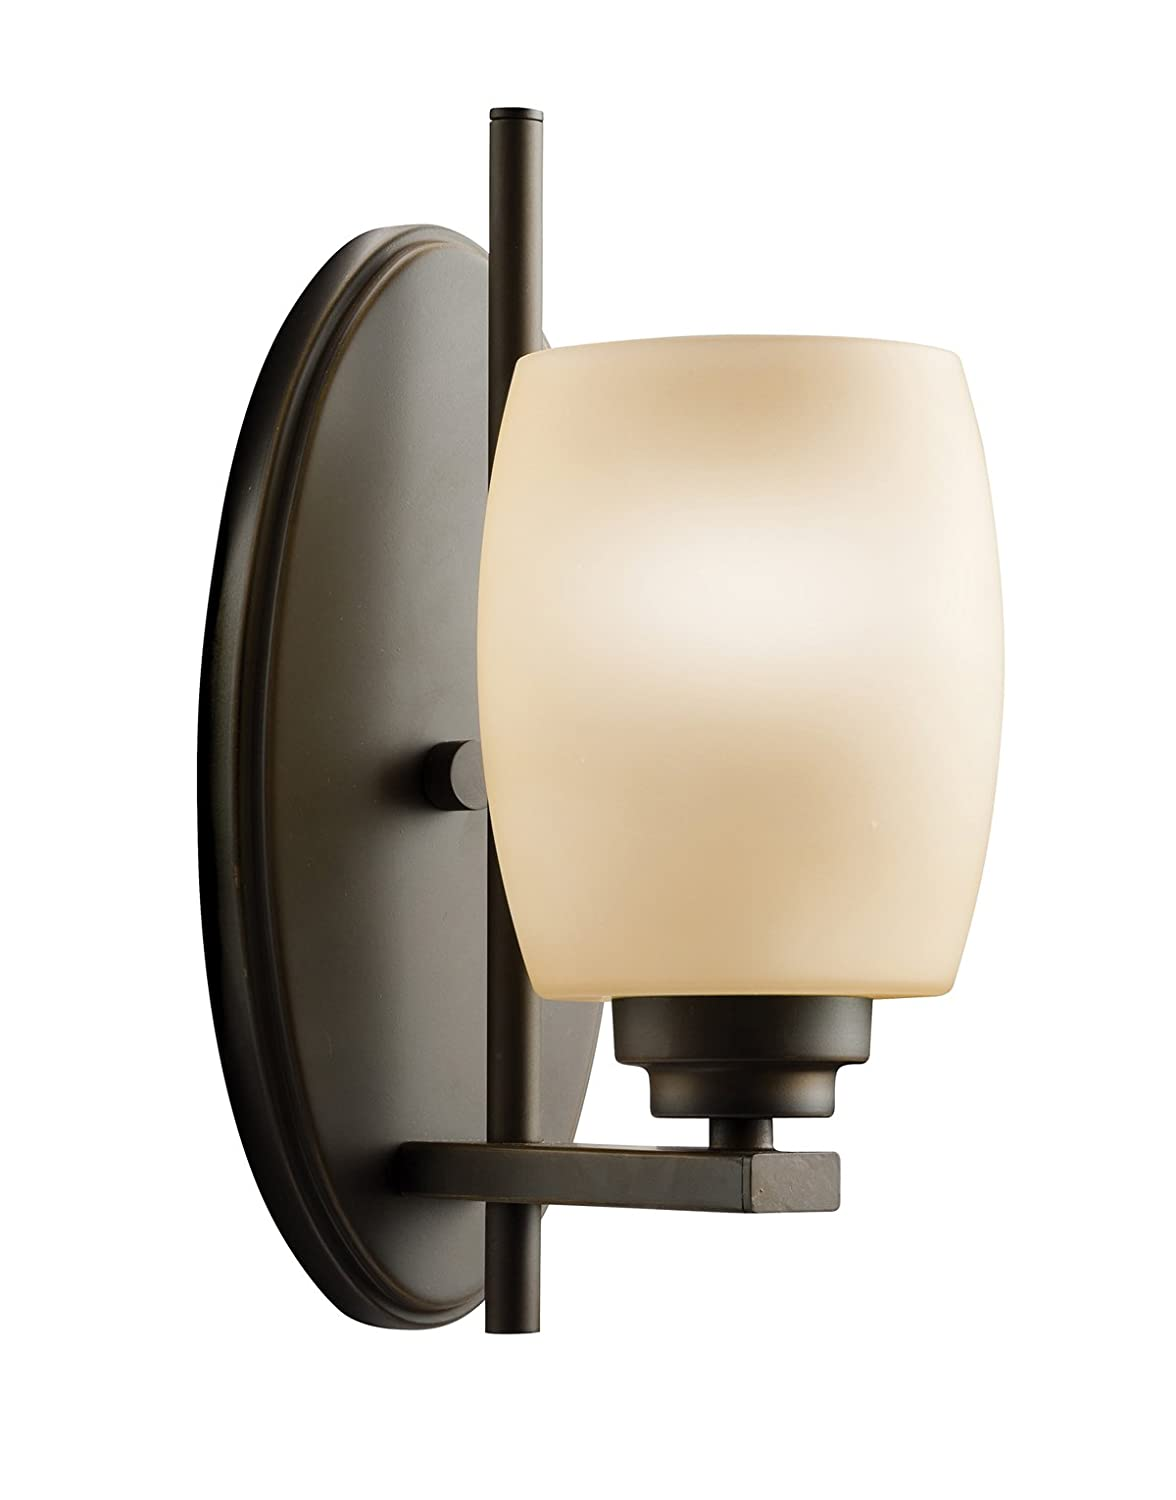 Kichler 5096oz one light wall sconce amazon amipublicfo Image collections